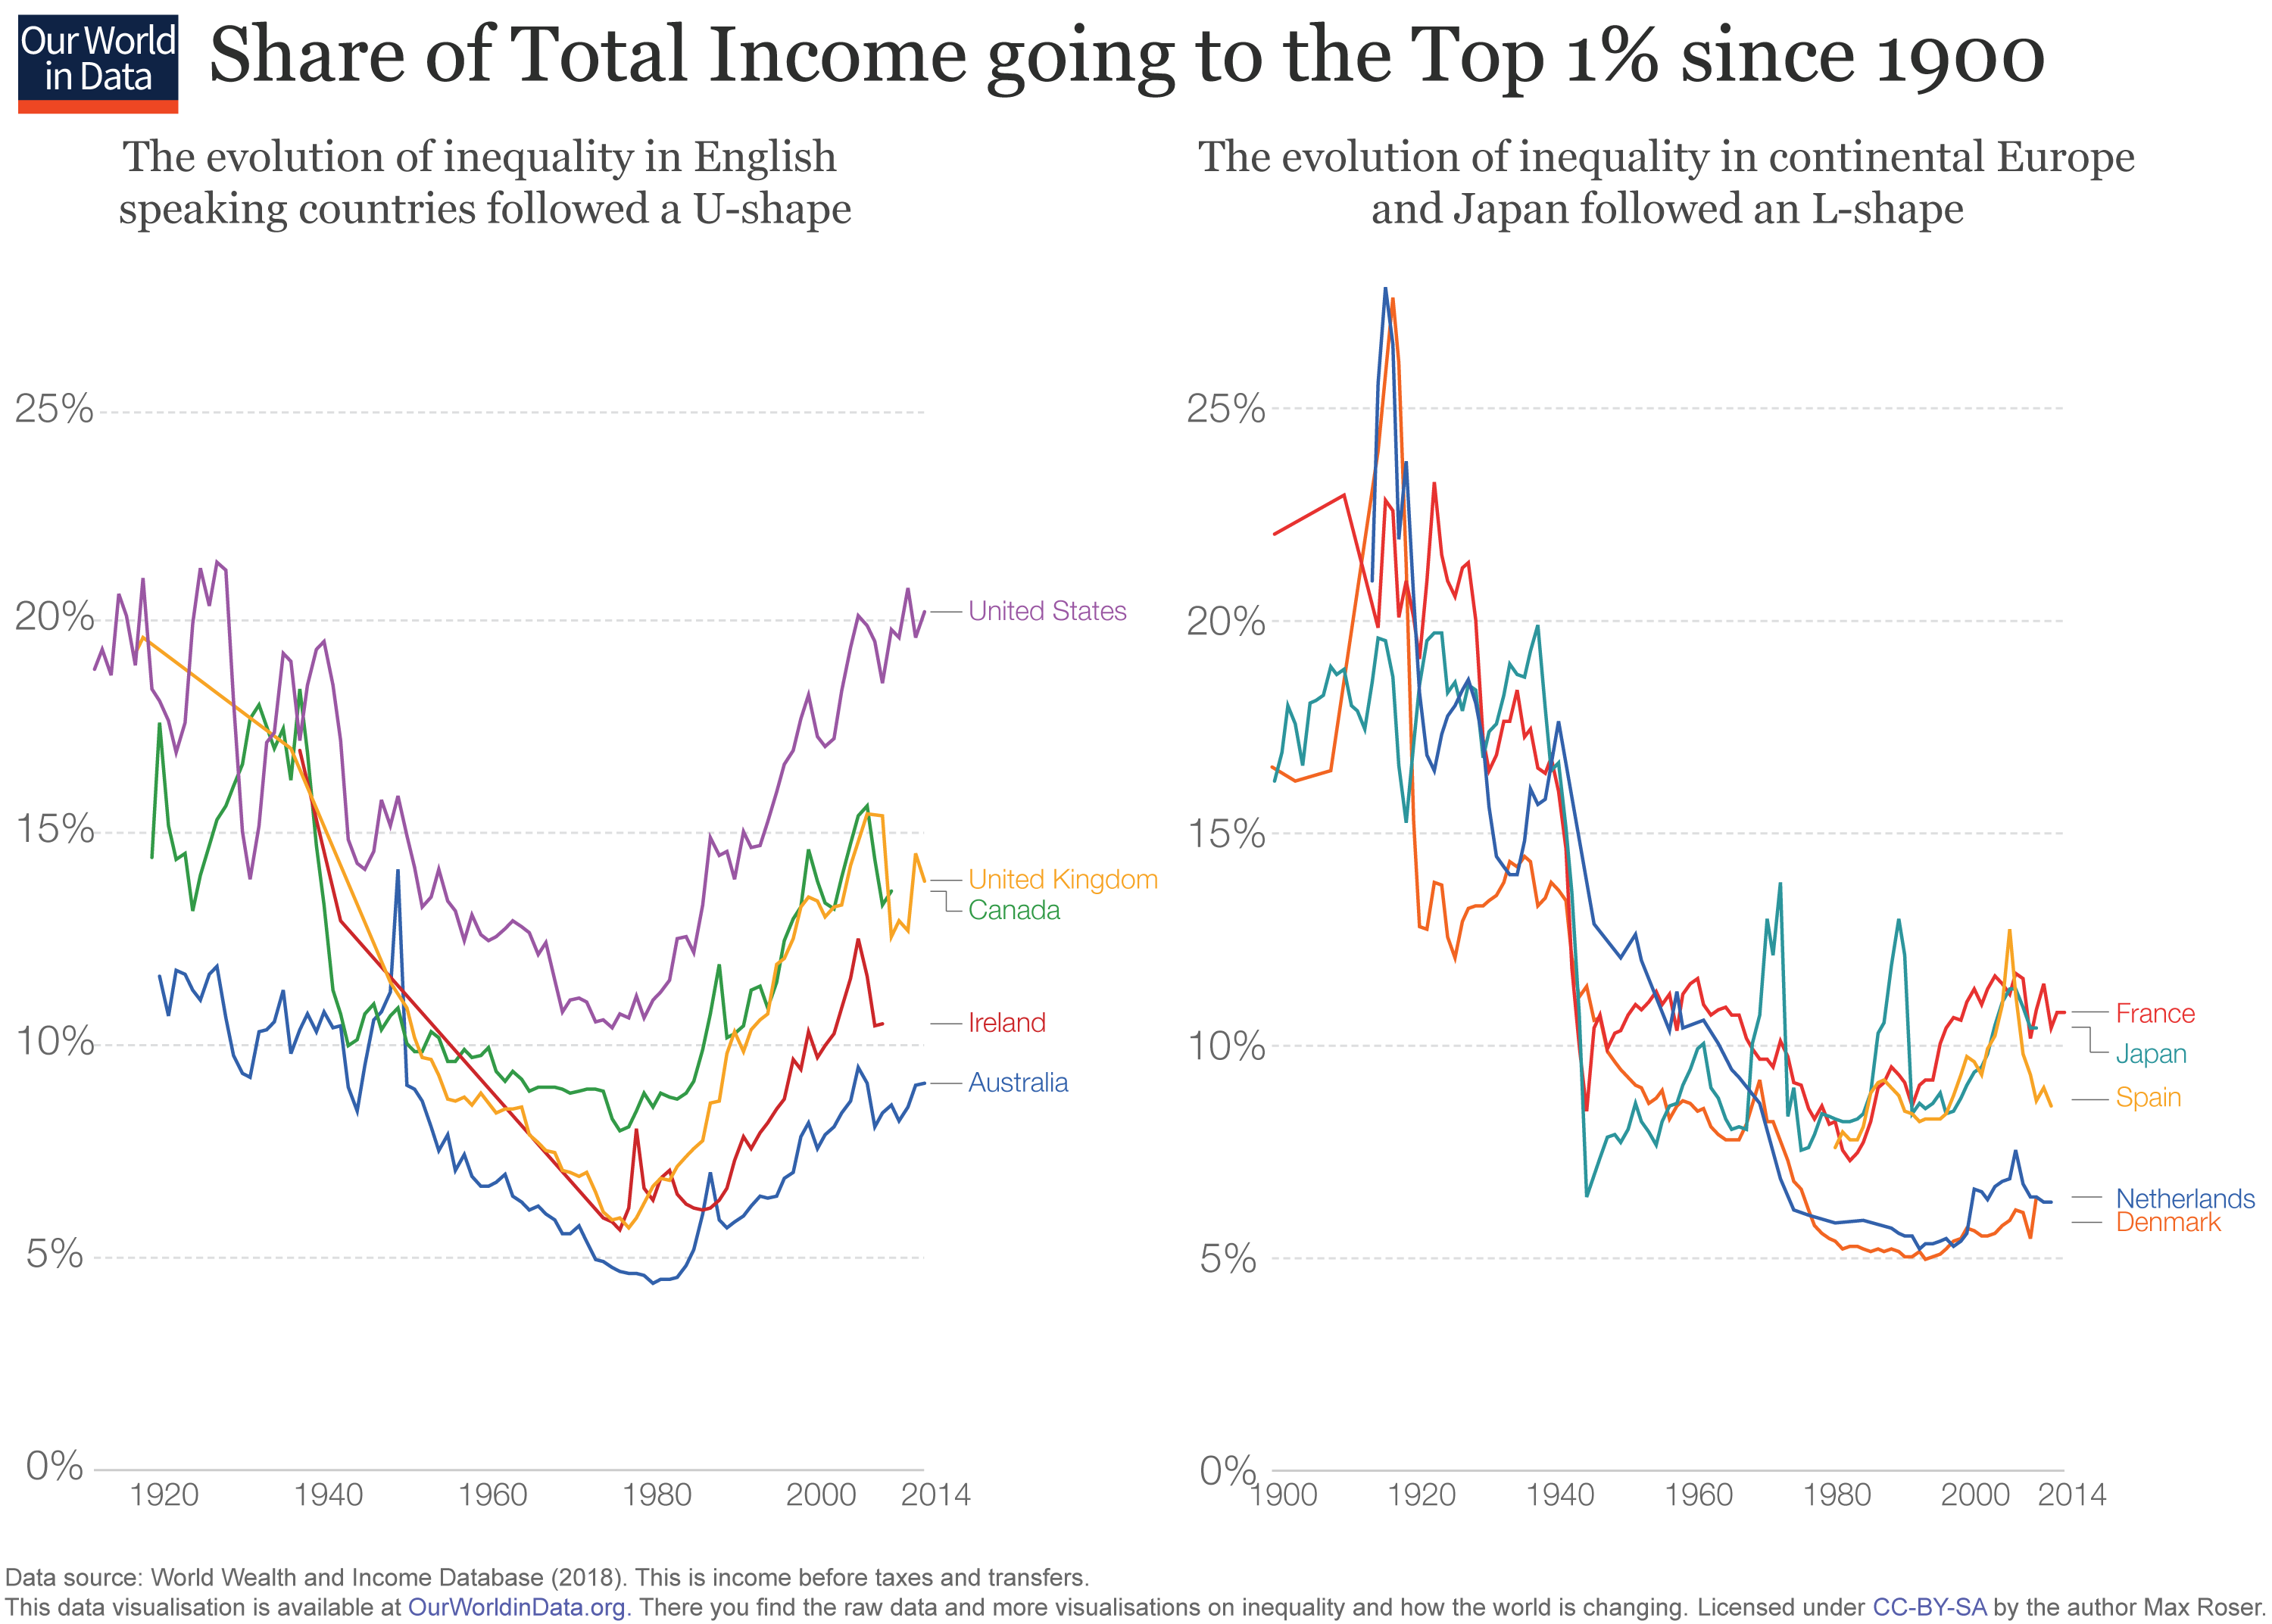 Graph showing the share of income of the top 1% in various countires